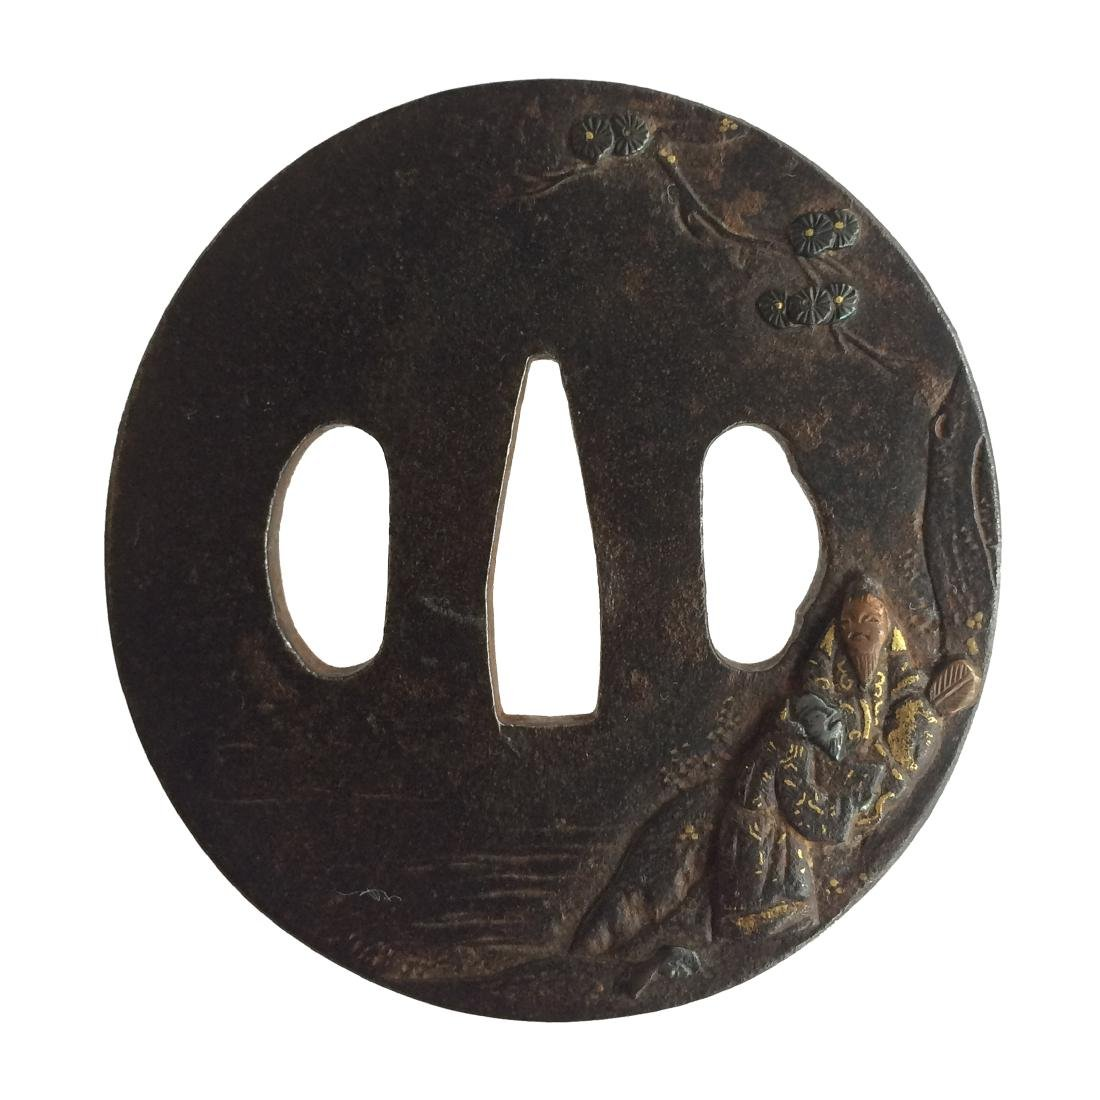 Iron tsuba with inlay and carving